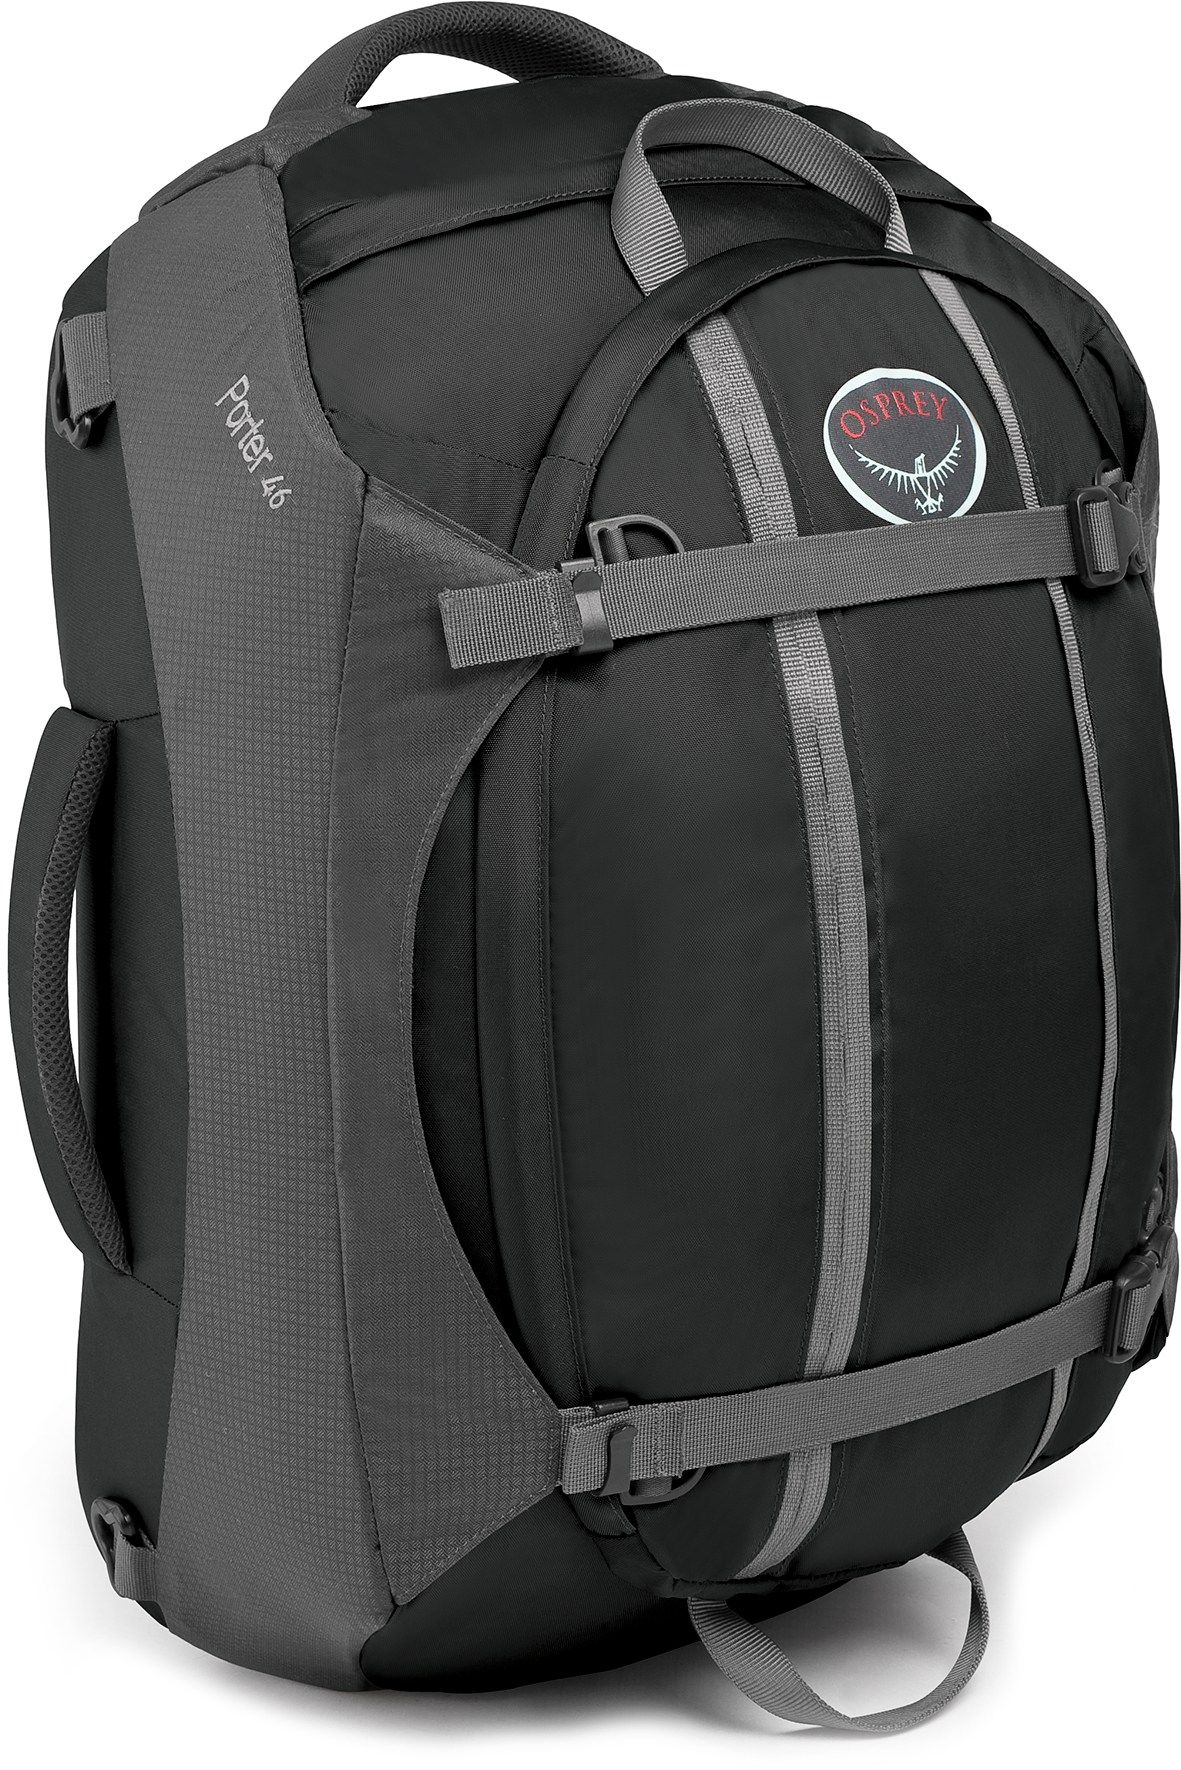 Osprey Porter 46 Backpack | Backpacking Europe | Pinterest | Dads ...